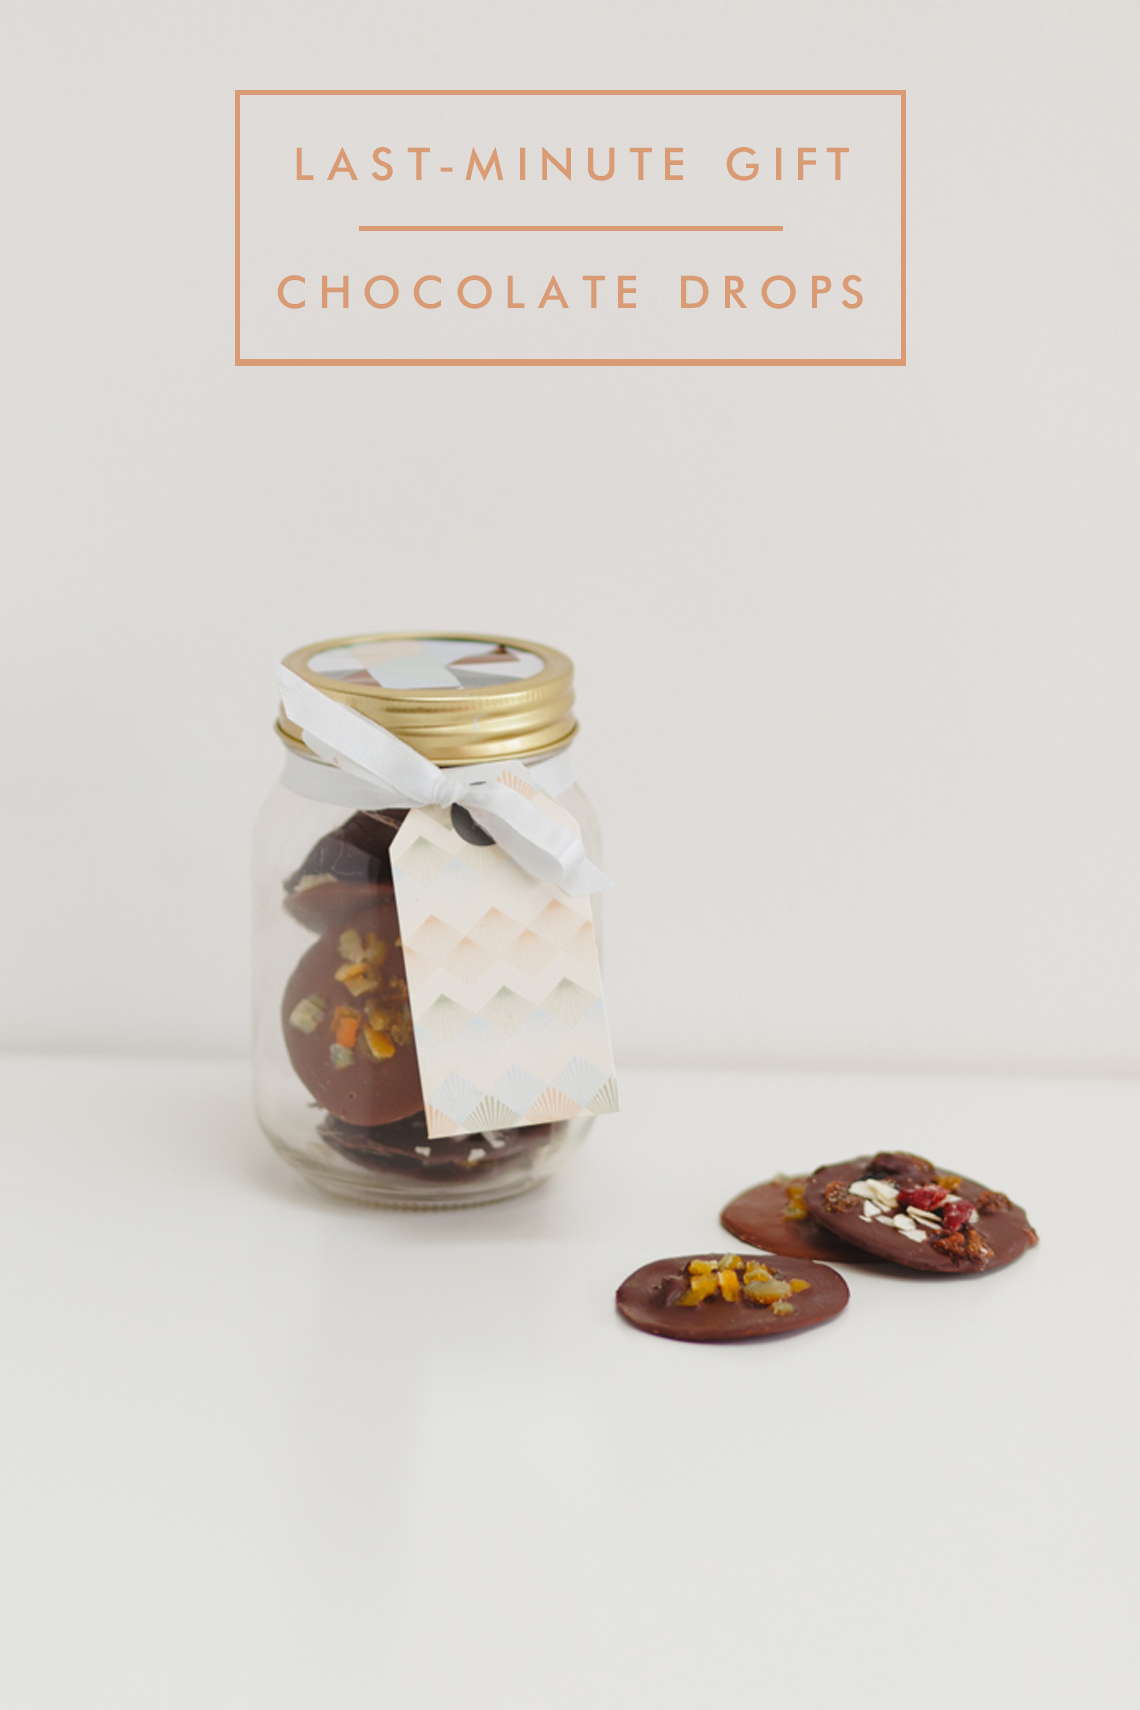 BLOVED Lifestyle Blog Christmas Gift Guide Last Minute Gifts Claire Graham Photography Chocolate Orange Nut Drops